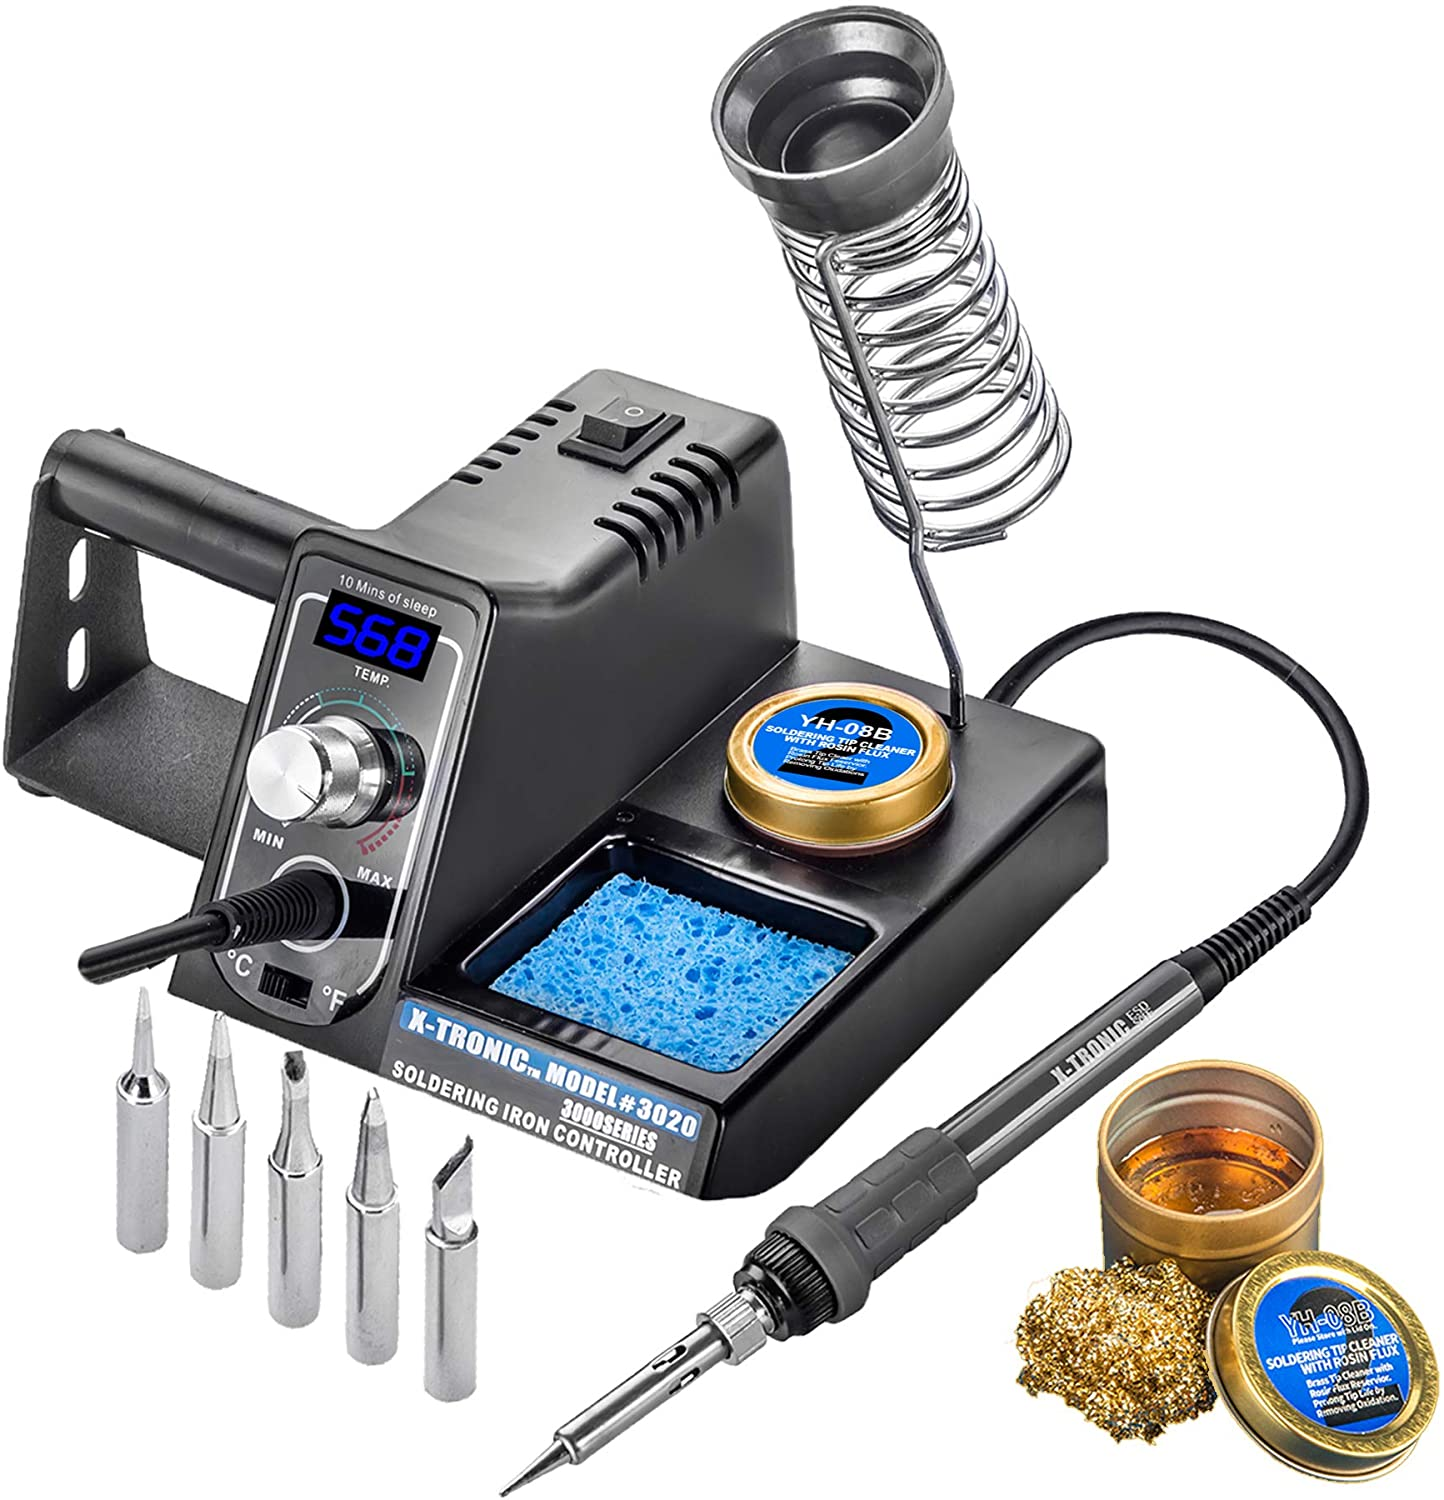 X-Tronic #3020 Soldering Station